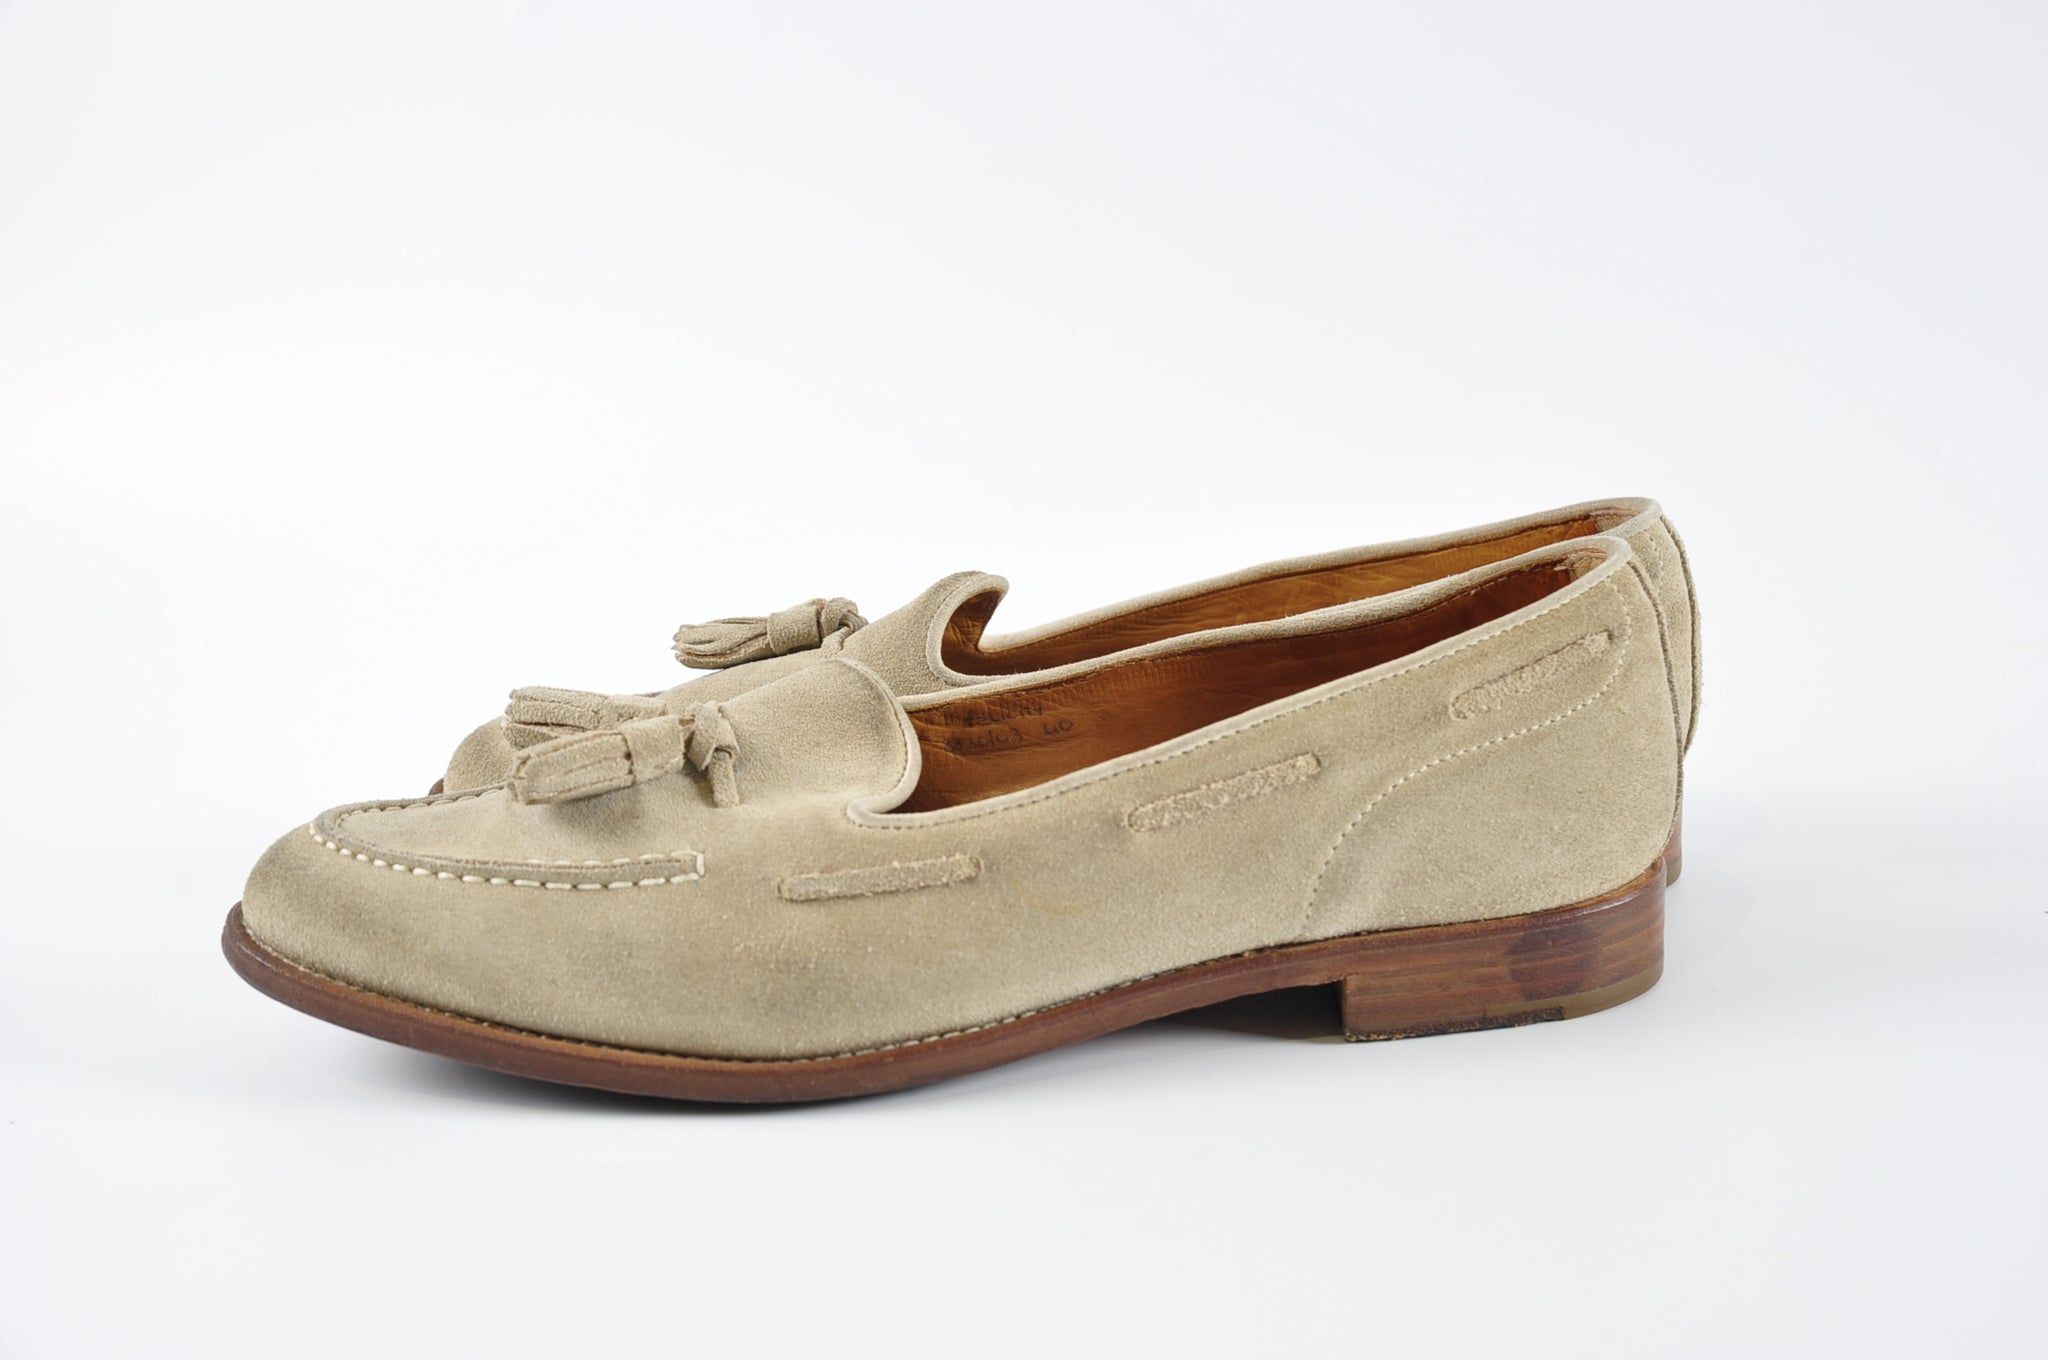 Church's Grey Suede Loafers - Size 40 - Glampot